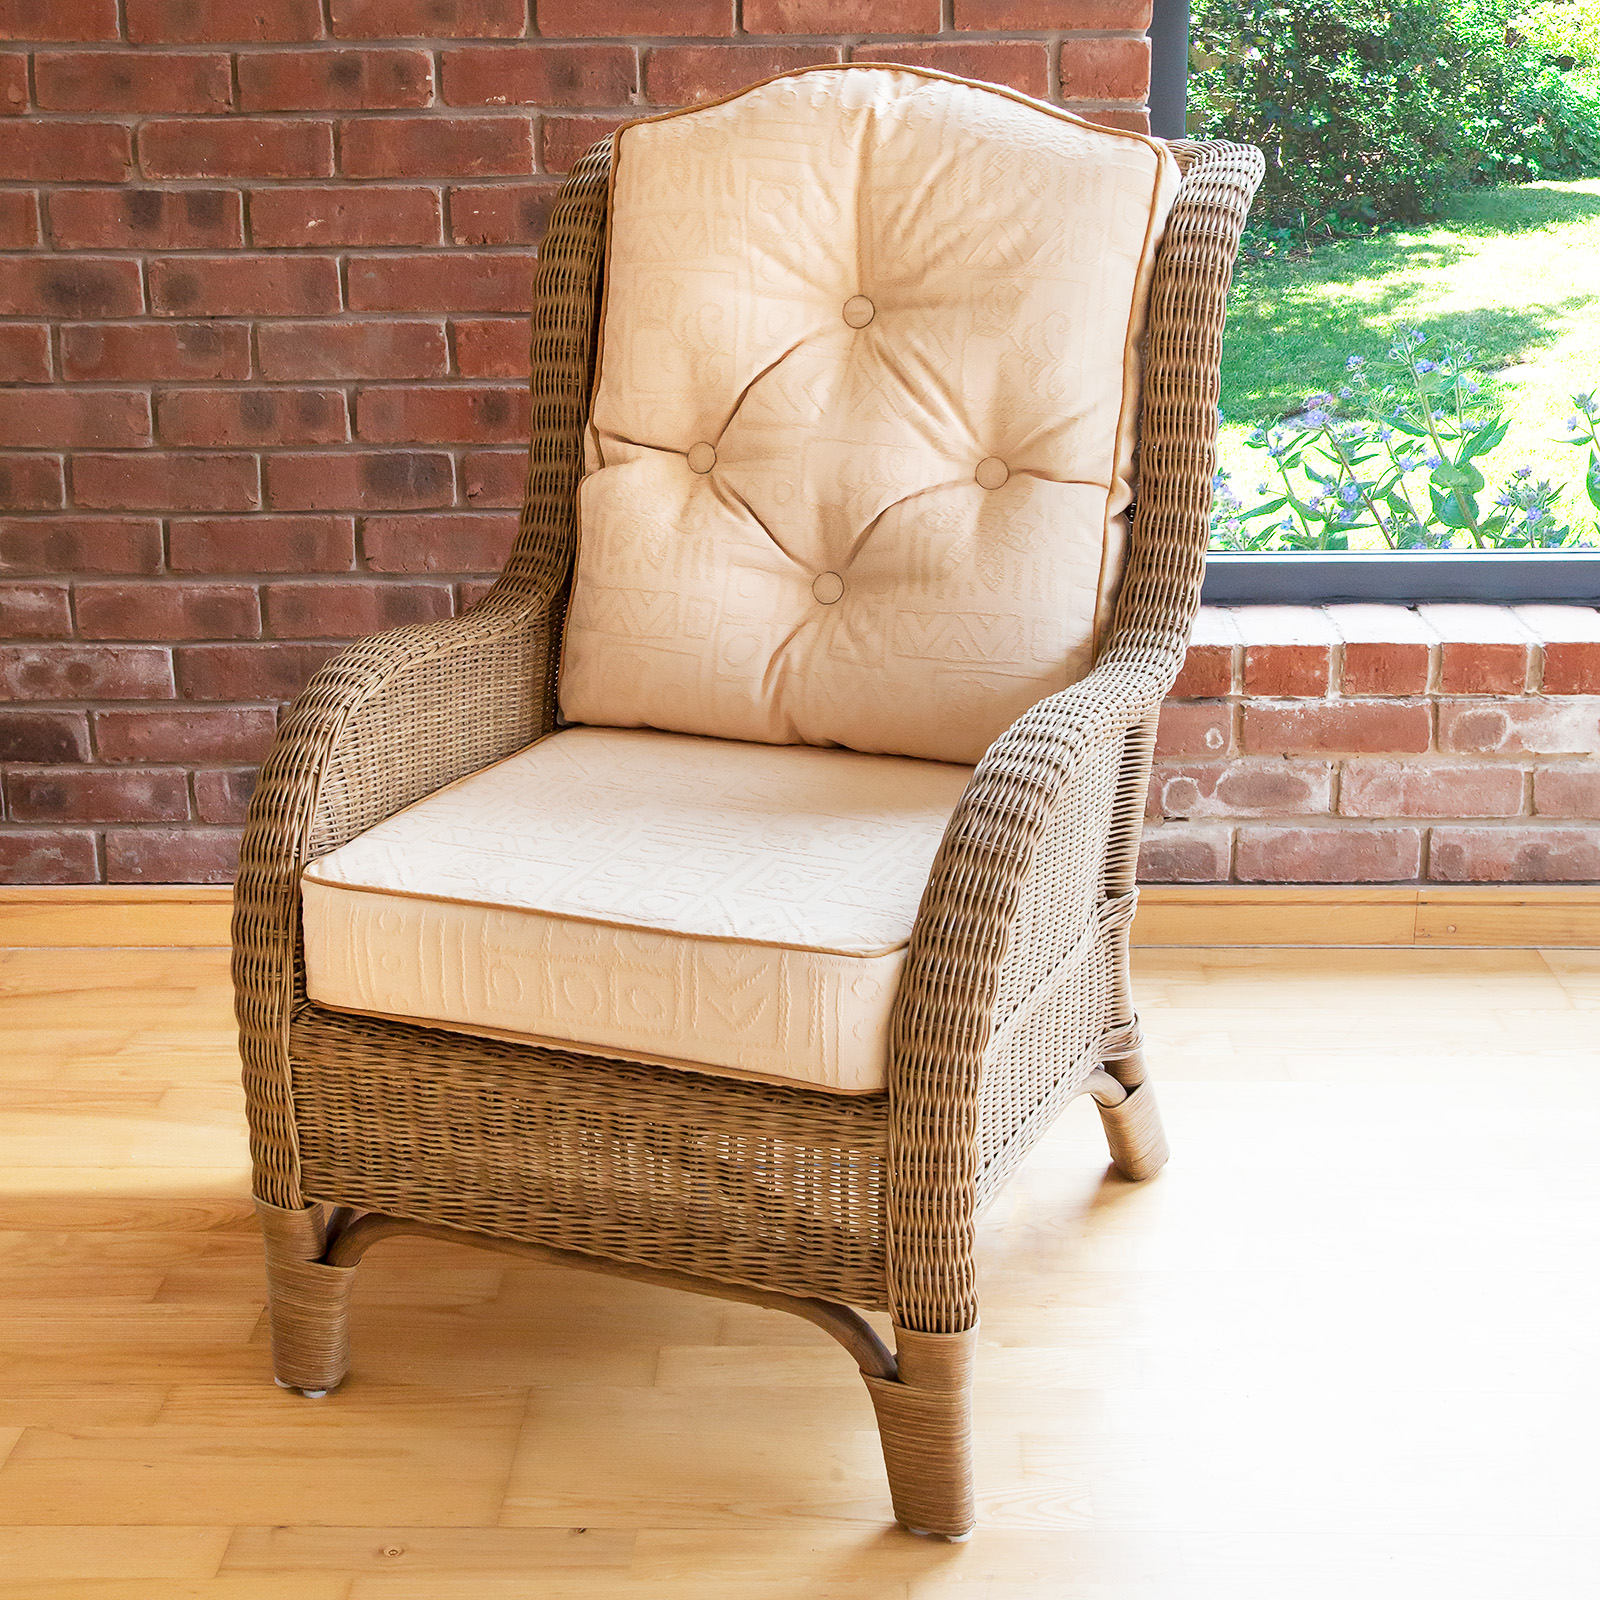 diy wicker chair cushions chairs for teenage bedrooms conservatory furniture denver reading bedroom